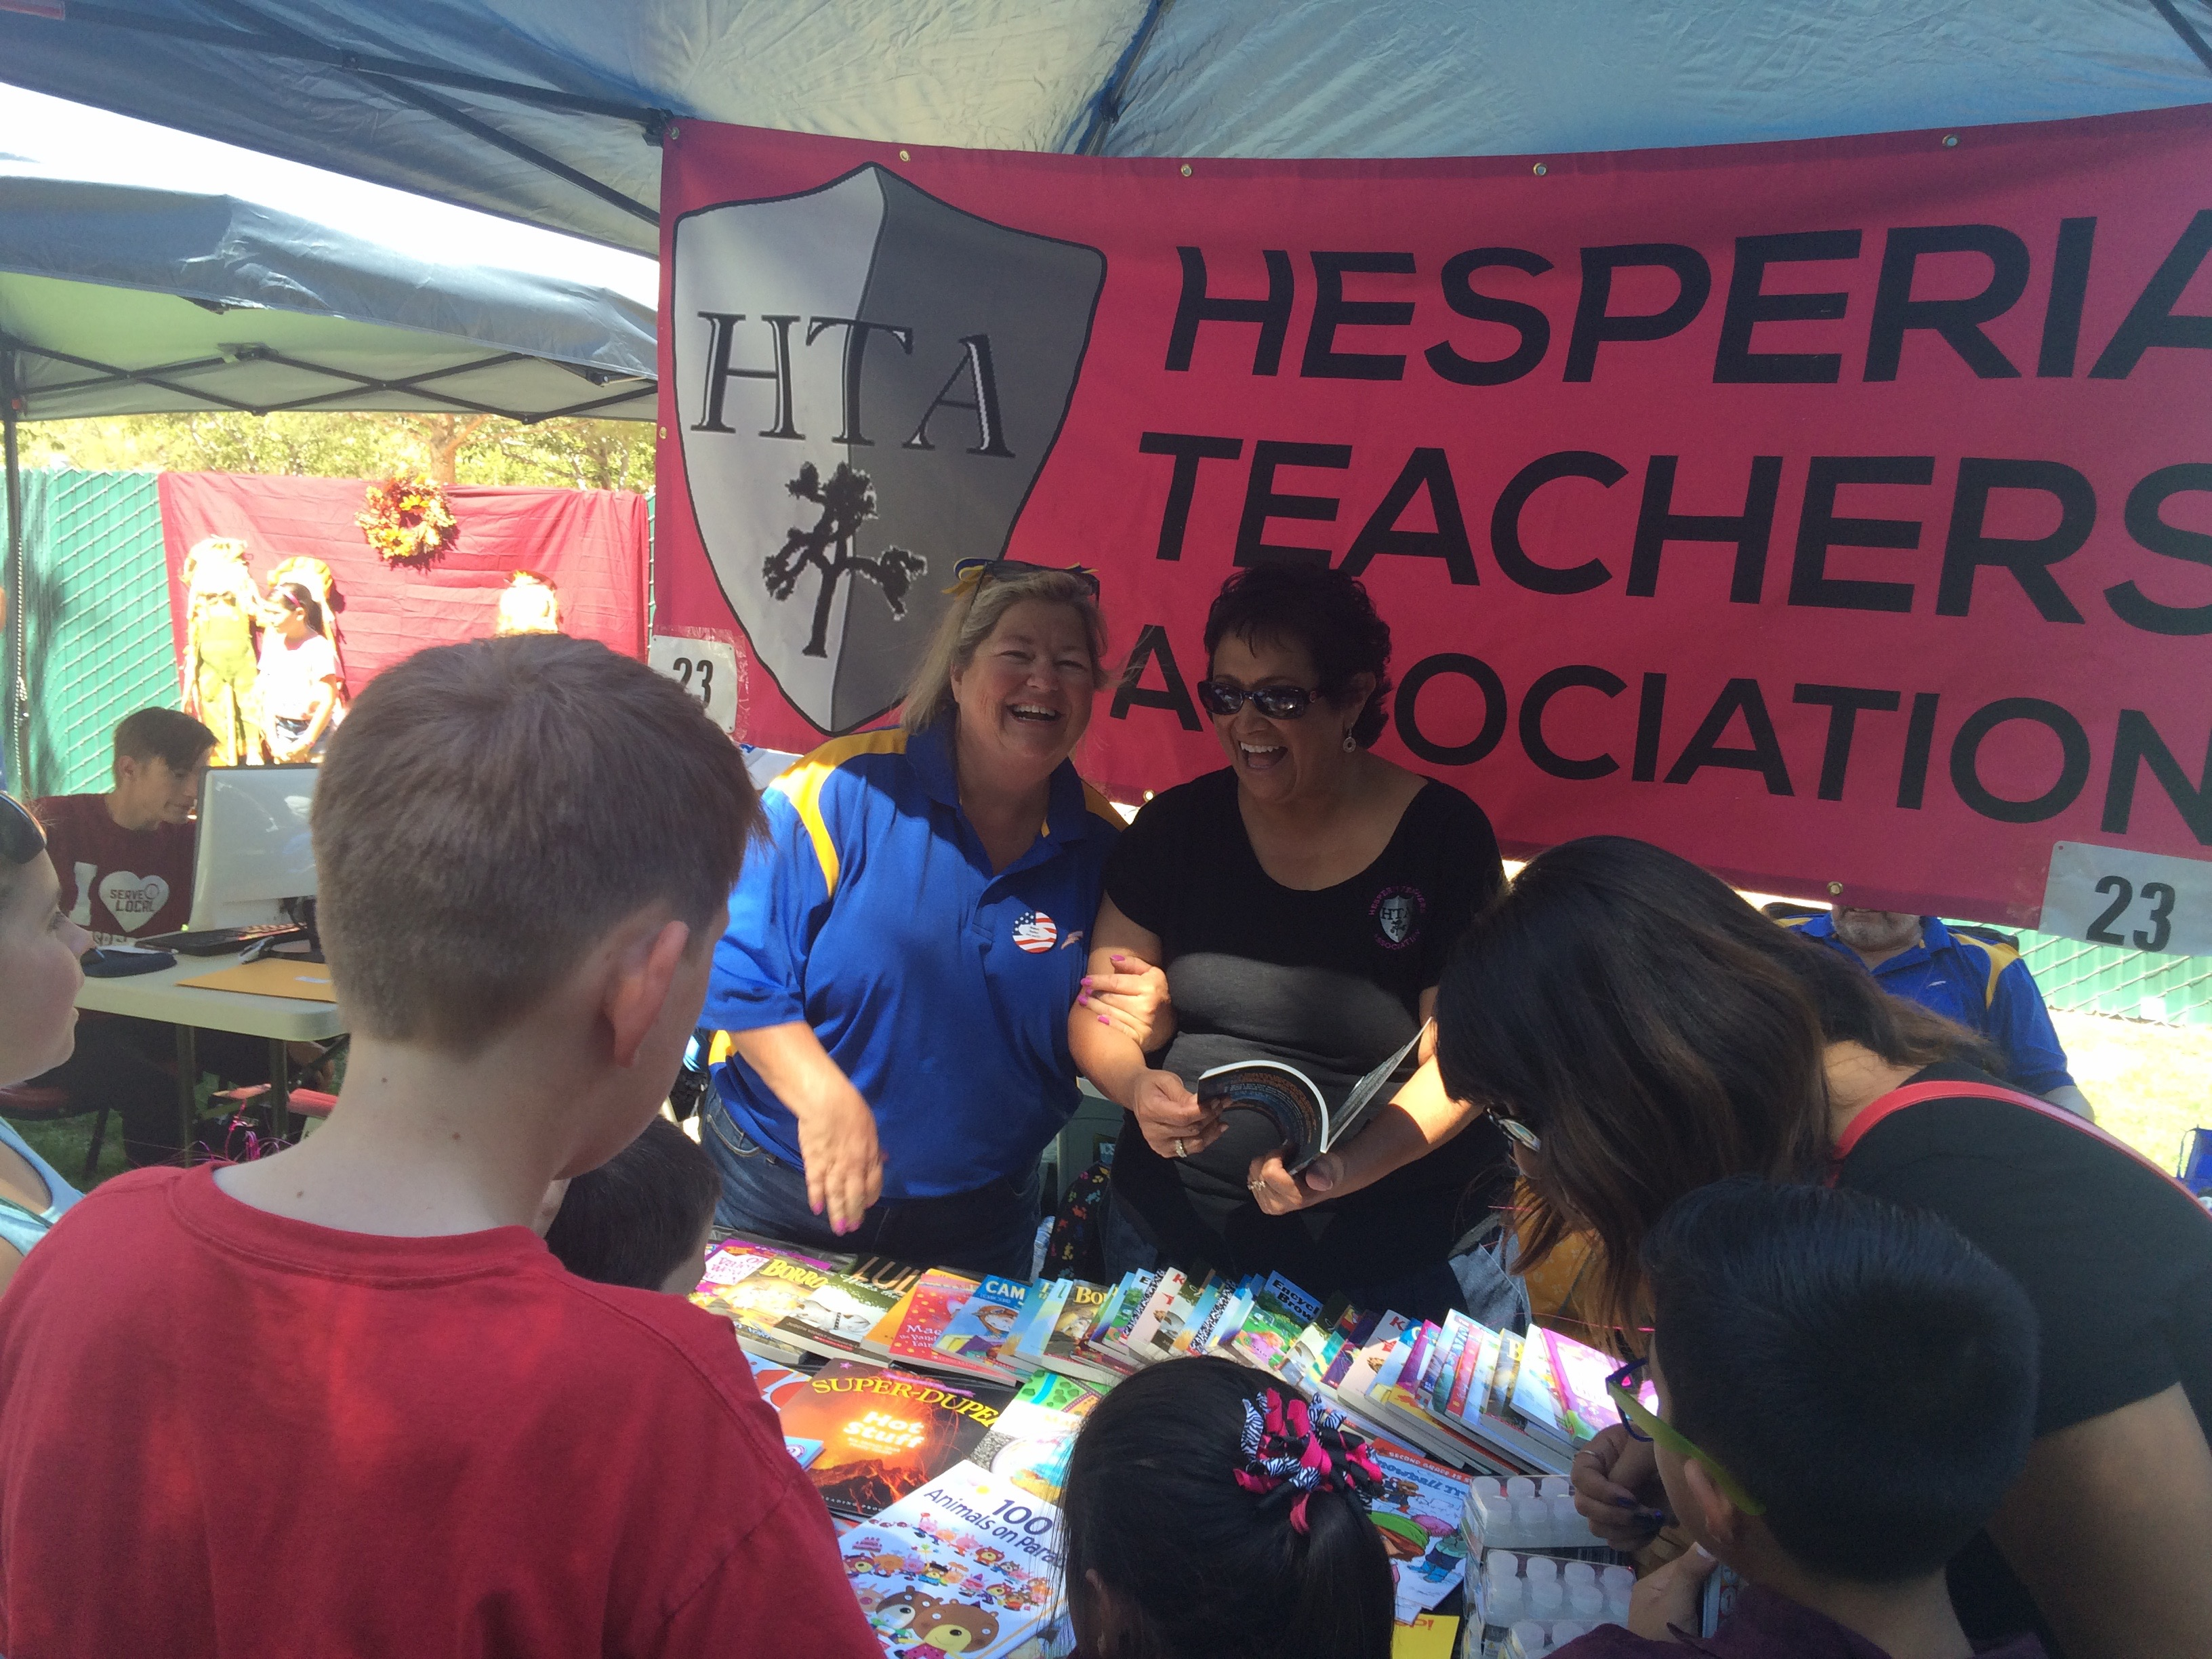 Giving away books at Hesperia Days